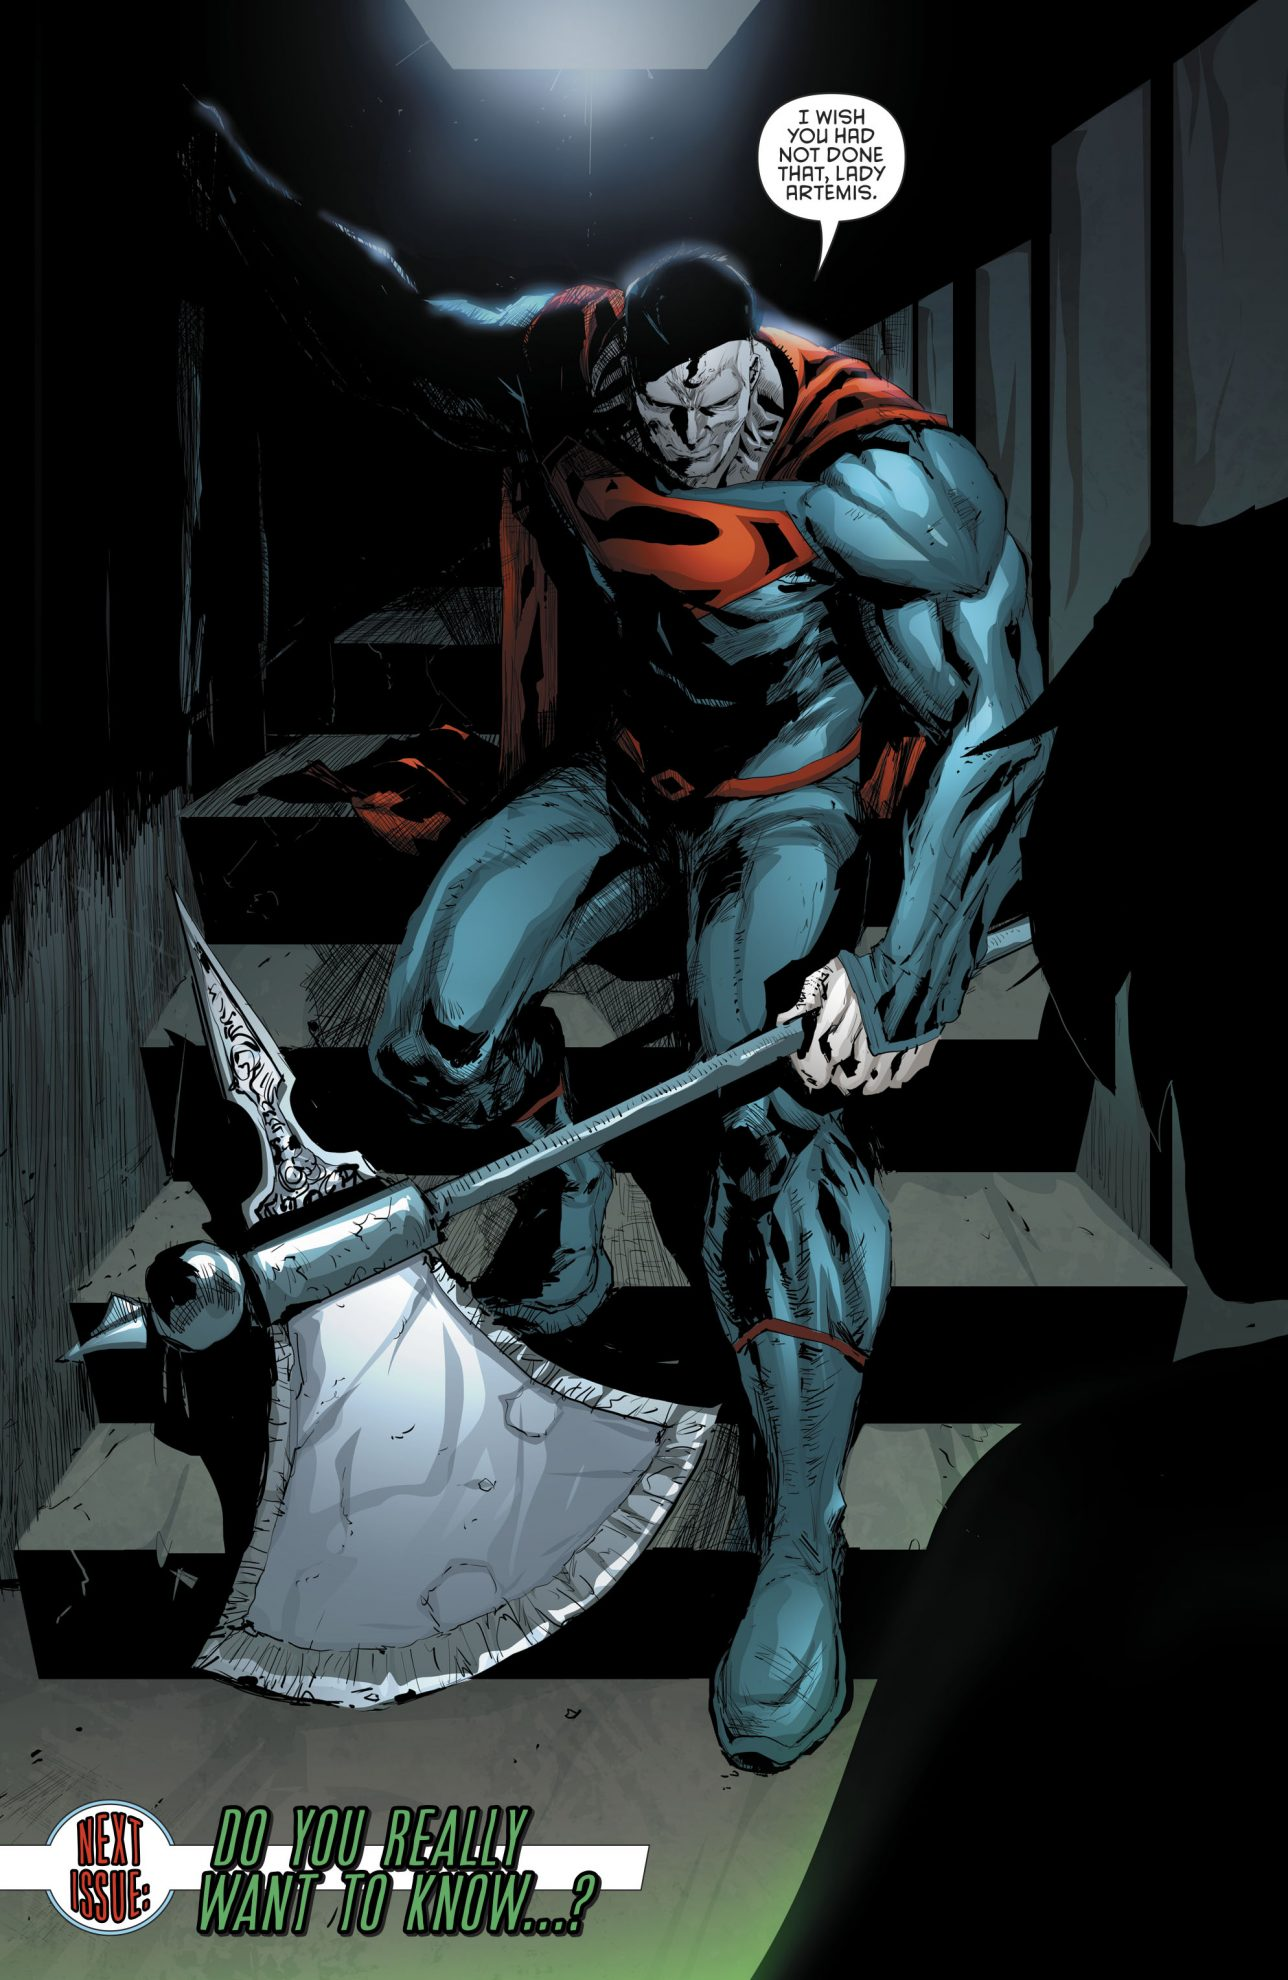 Bizarro (Red Hood and the Outlaws Vol 2 #20)